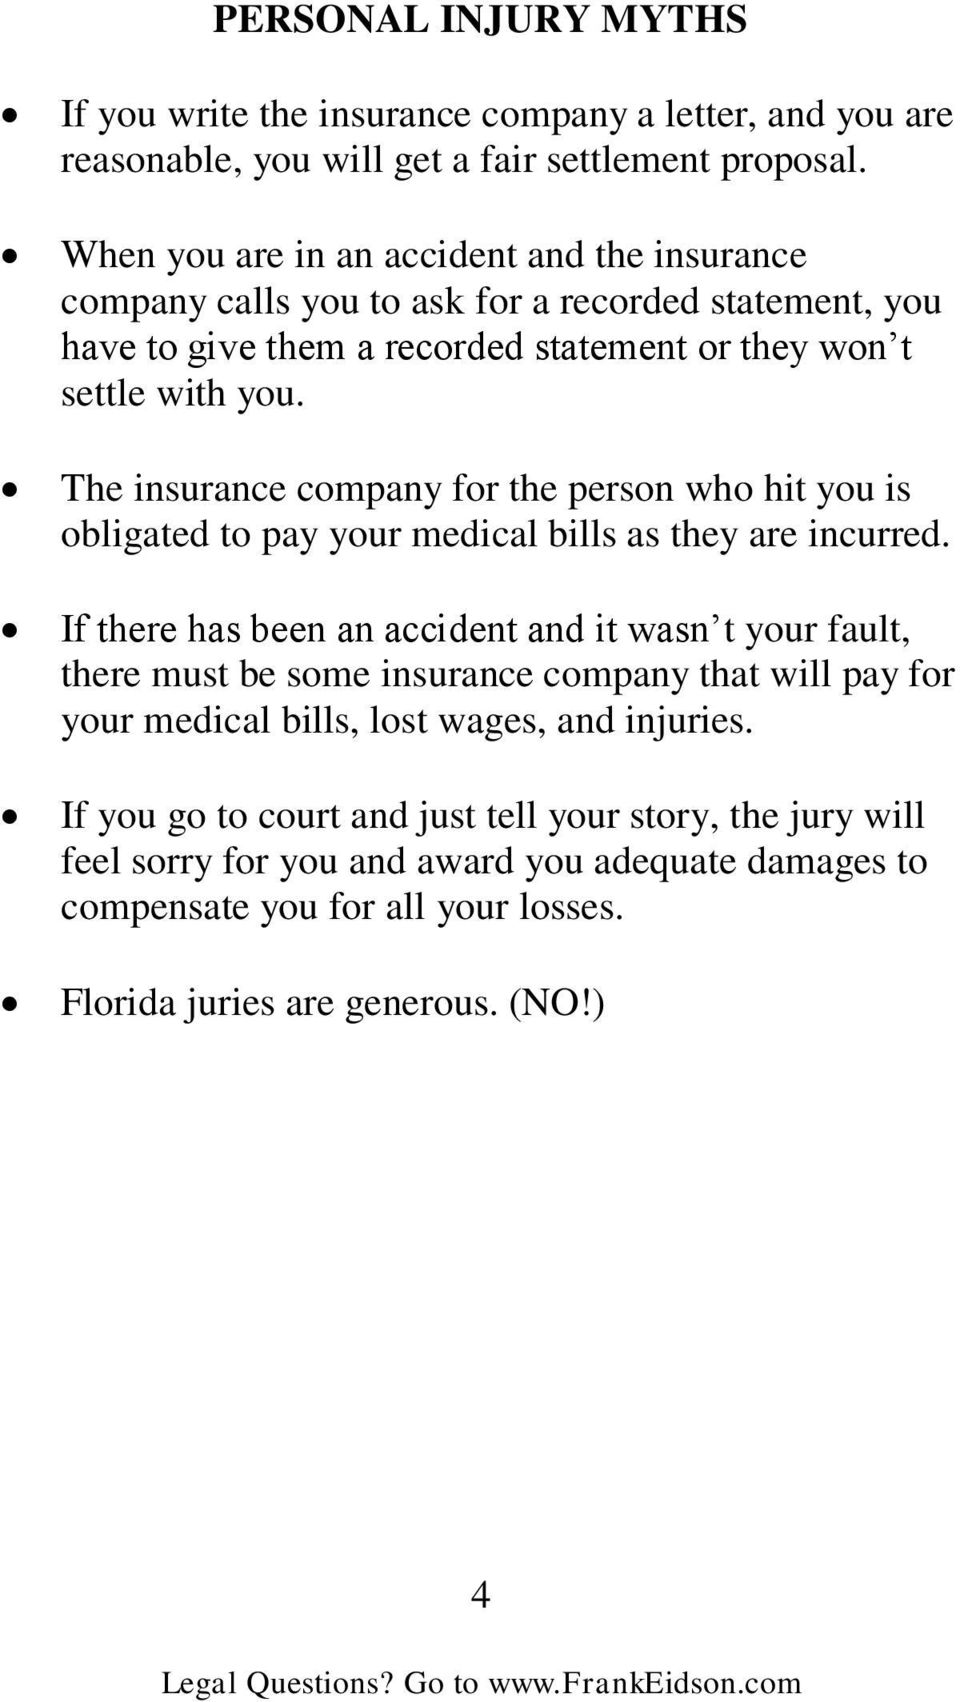 The insurance company for the person who hit you is obligated to pay your medical bills as they are incurred.